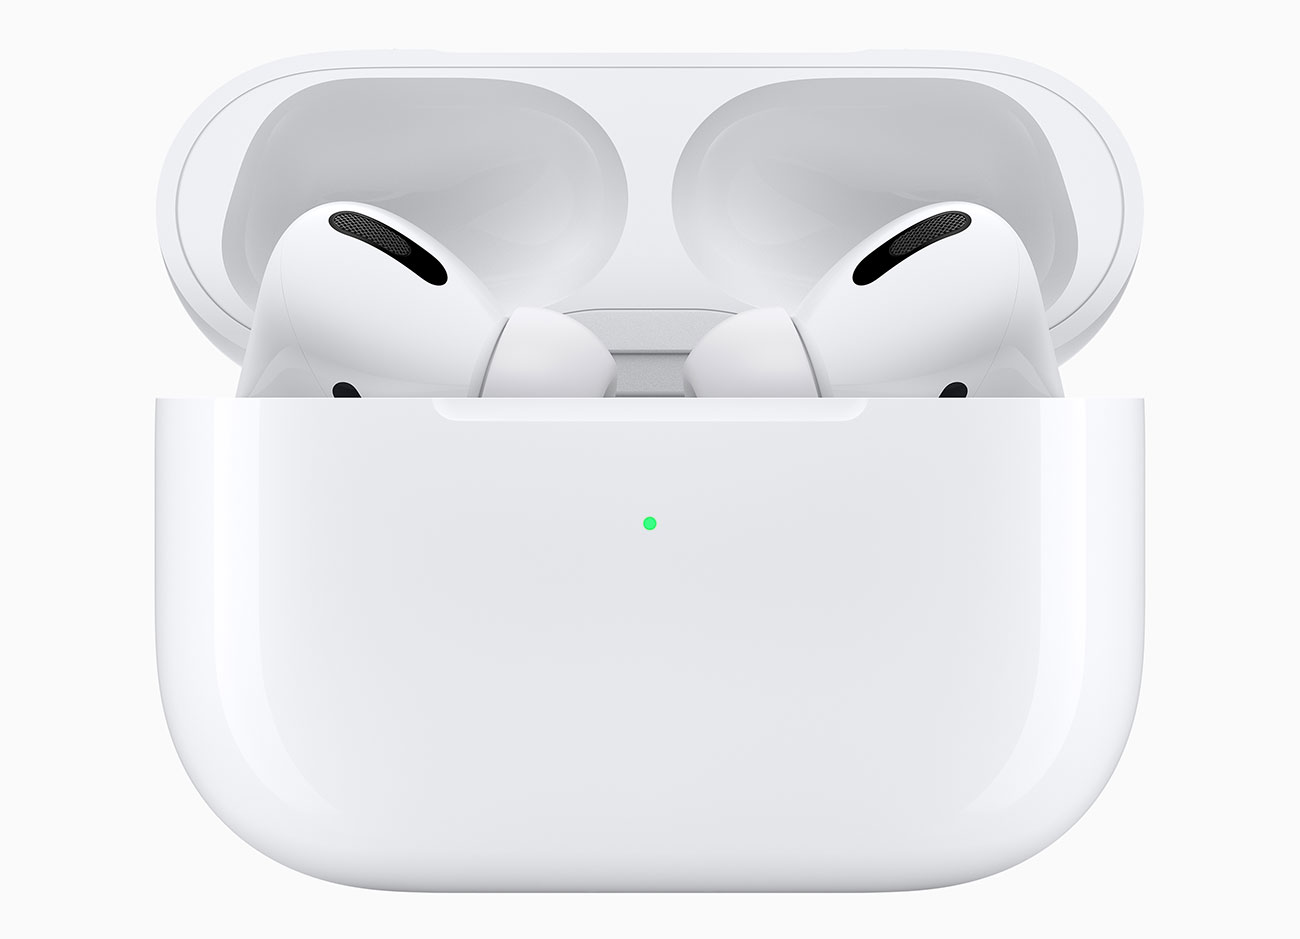 6 of the hottest gadgets for designers: Airpods Pro